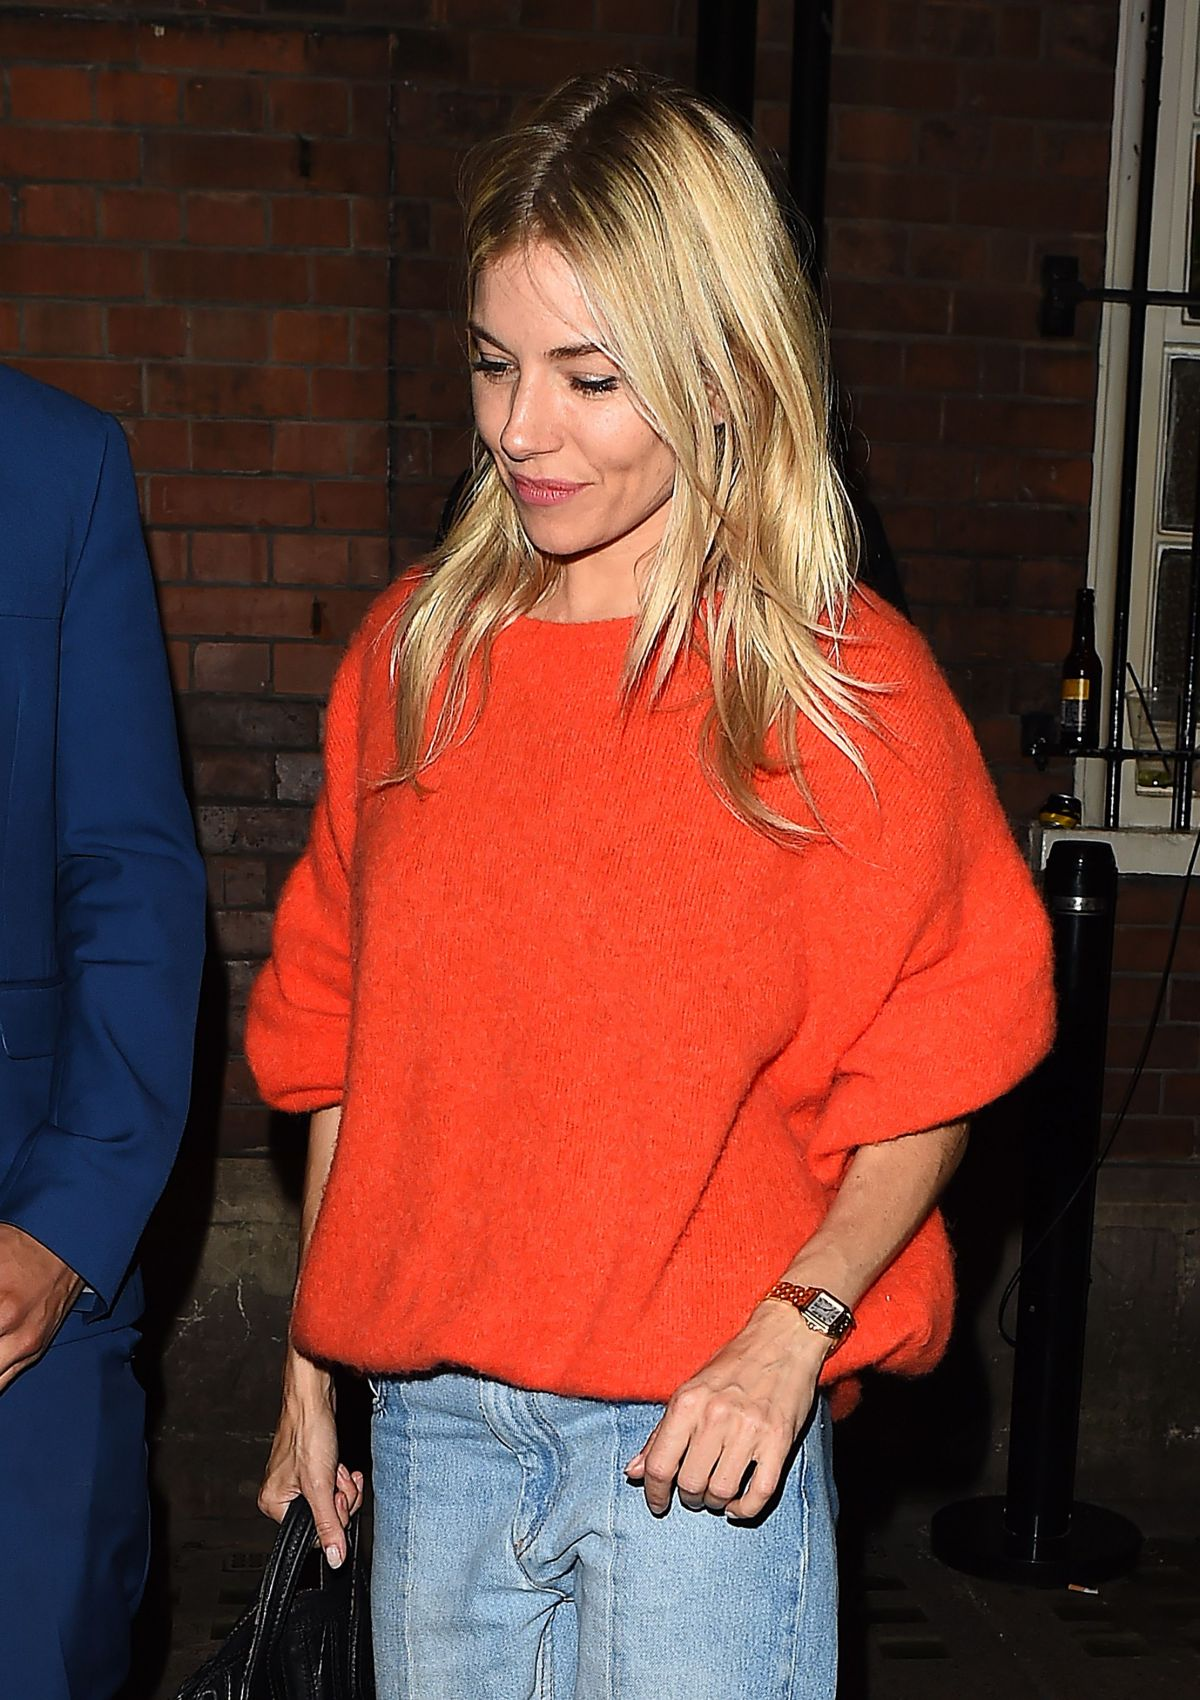 SIENNA MILLER Leaves Her Performance in Cat on a Hot Tin Roof in London 09/01/2017